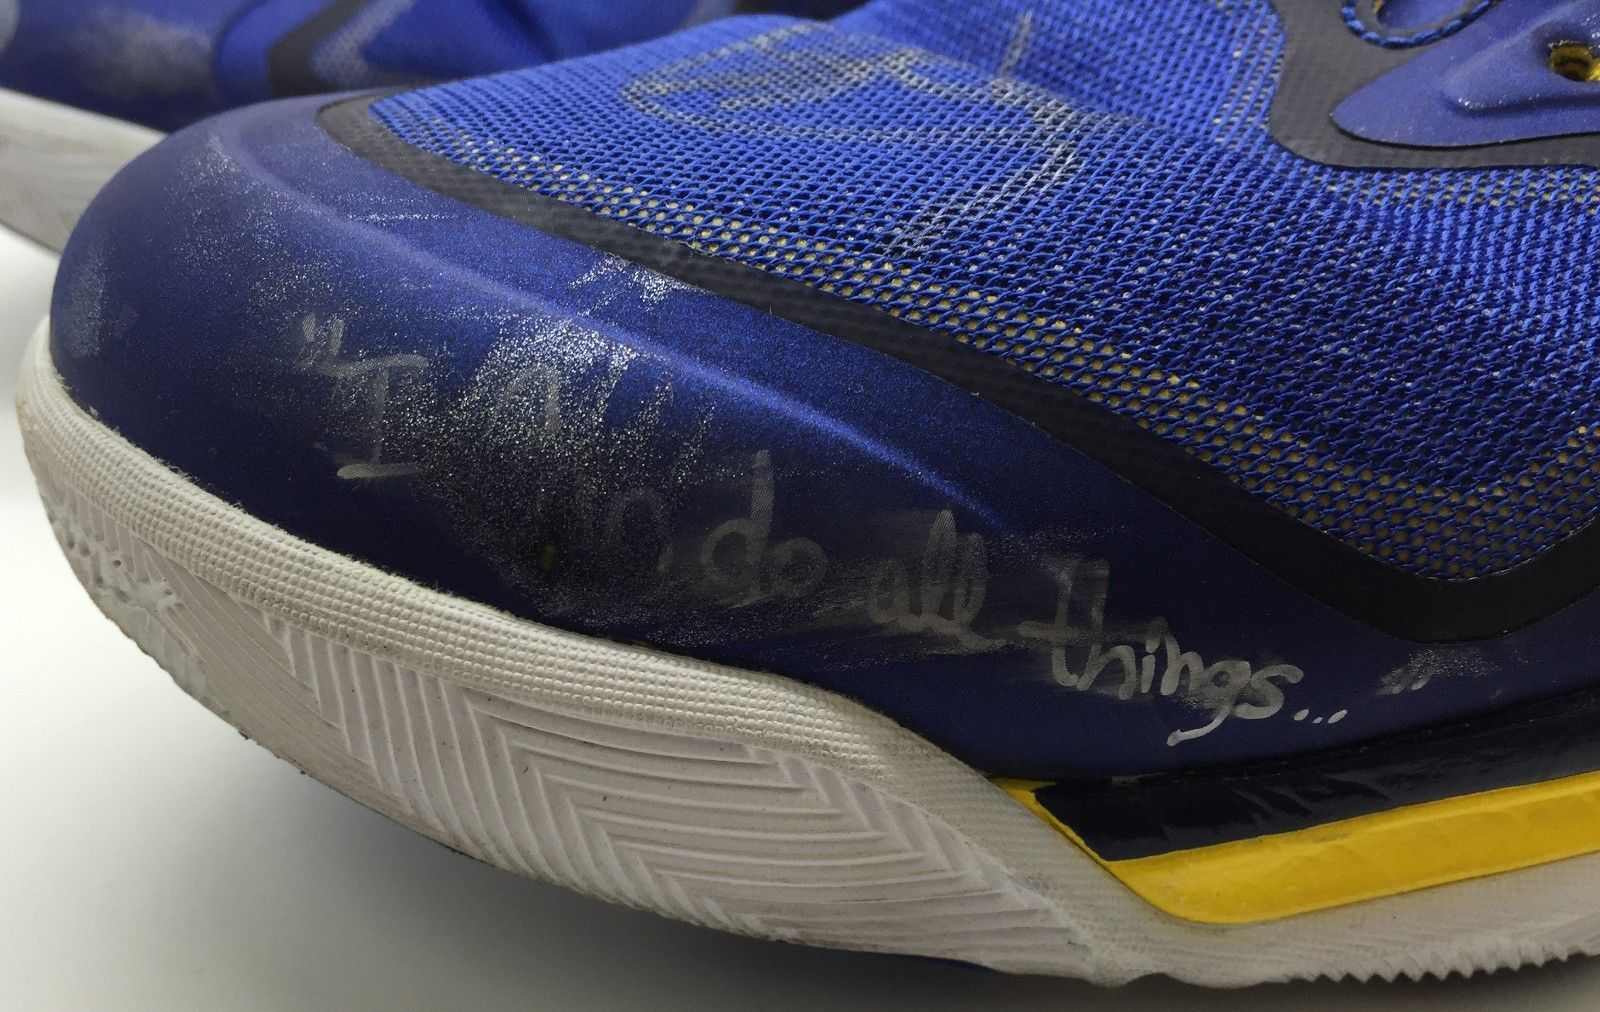 5e0308f6a22 ... 2015 NBA Champion   MVP Steph Curry Game Used   Signed 2013 Sneakers w   Photo ...